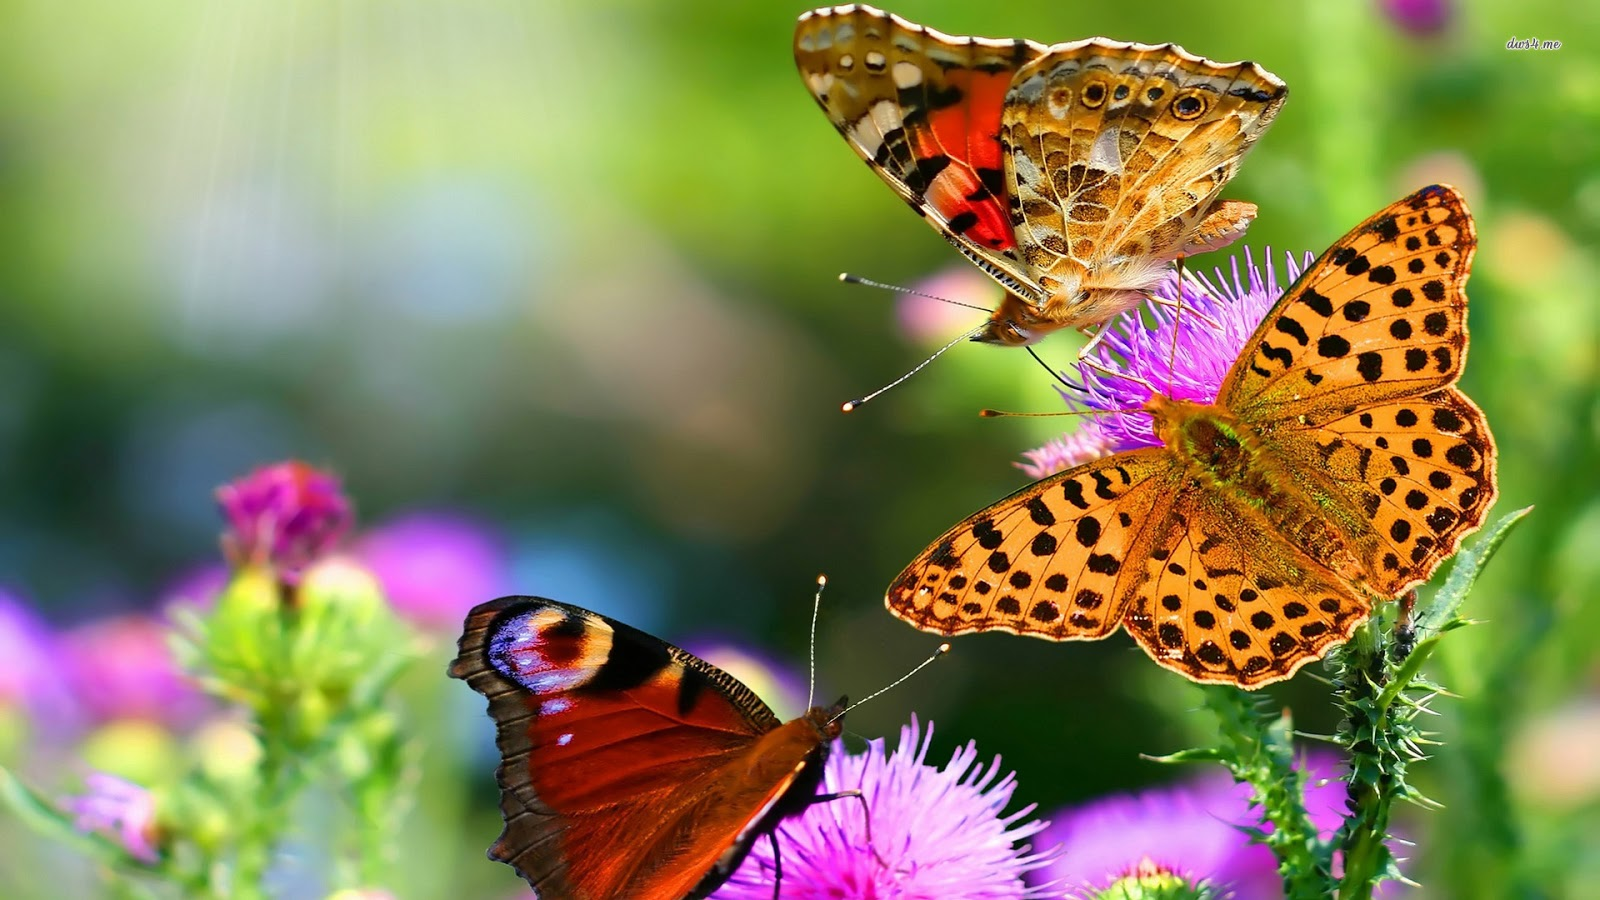 Beatiful Butterfly Hd Wallpapers Free Download For Android Top